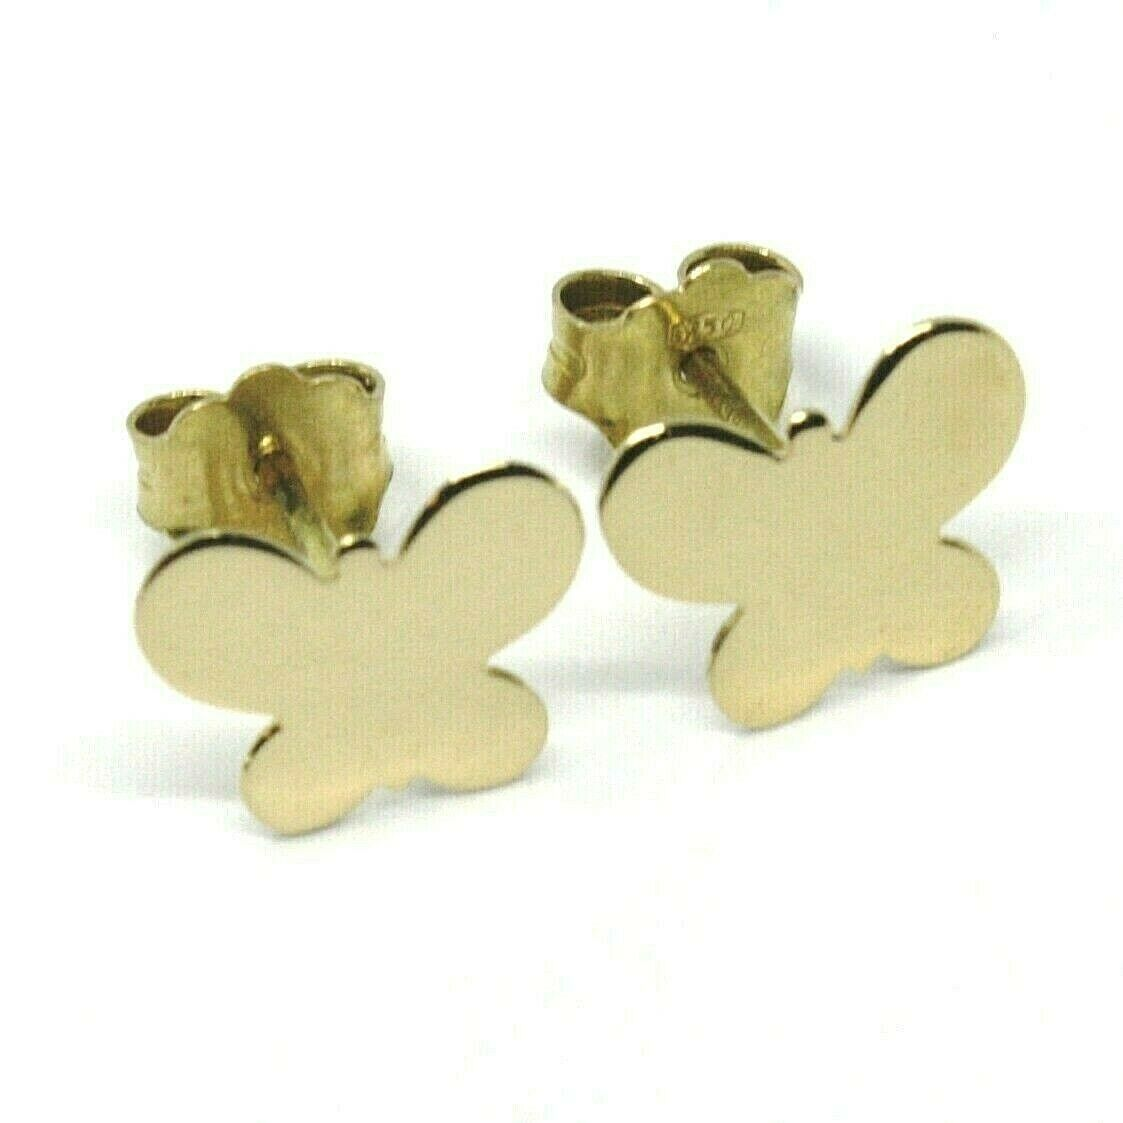 SOLID 18K YELLOW GOLD EARRINGS FLAT BUTTERFLY, SHINY, SMOOTH, 8x10 MM